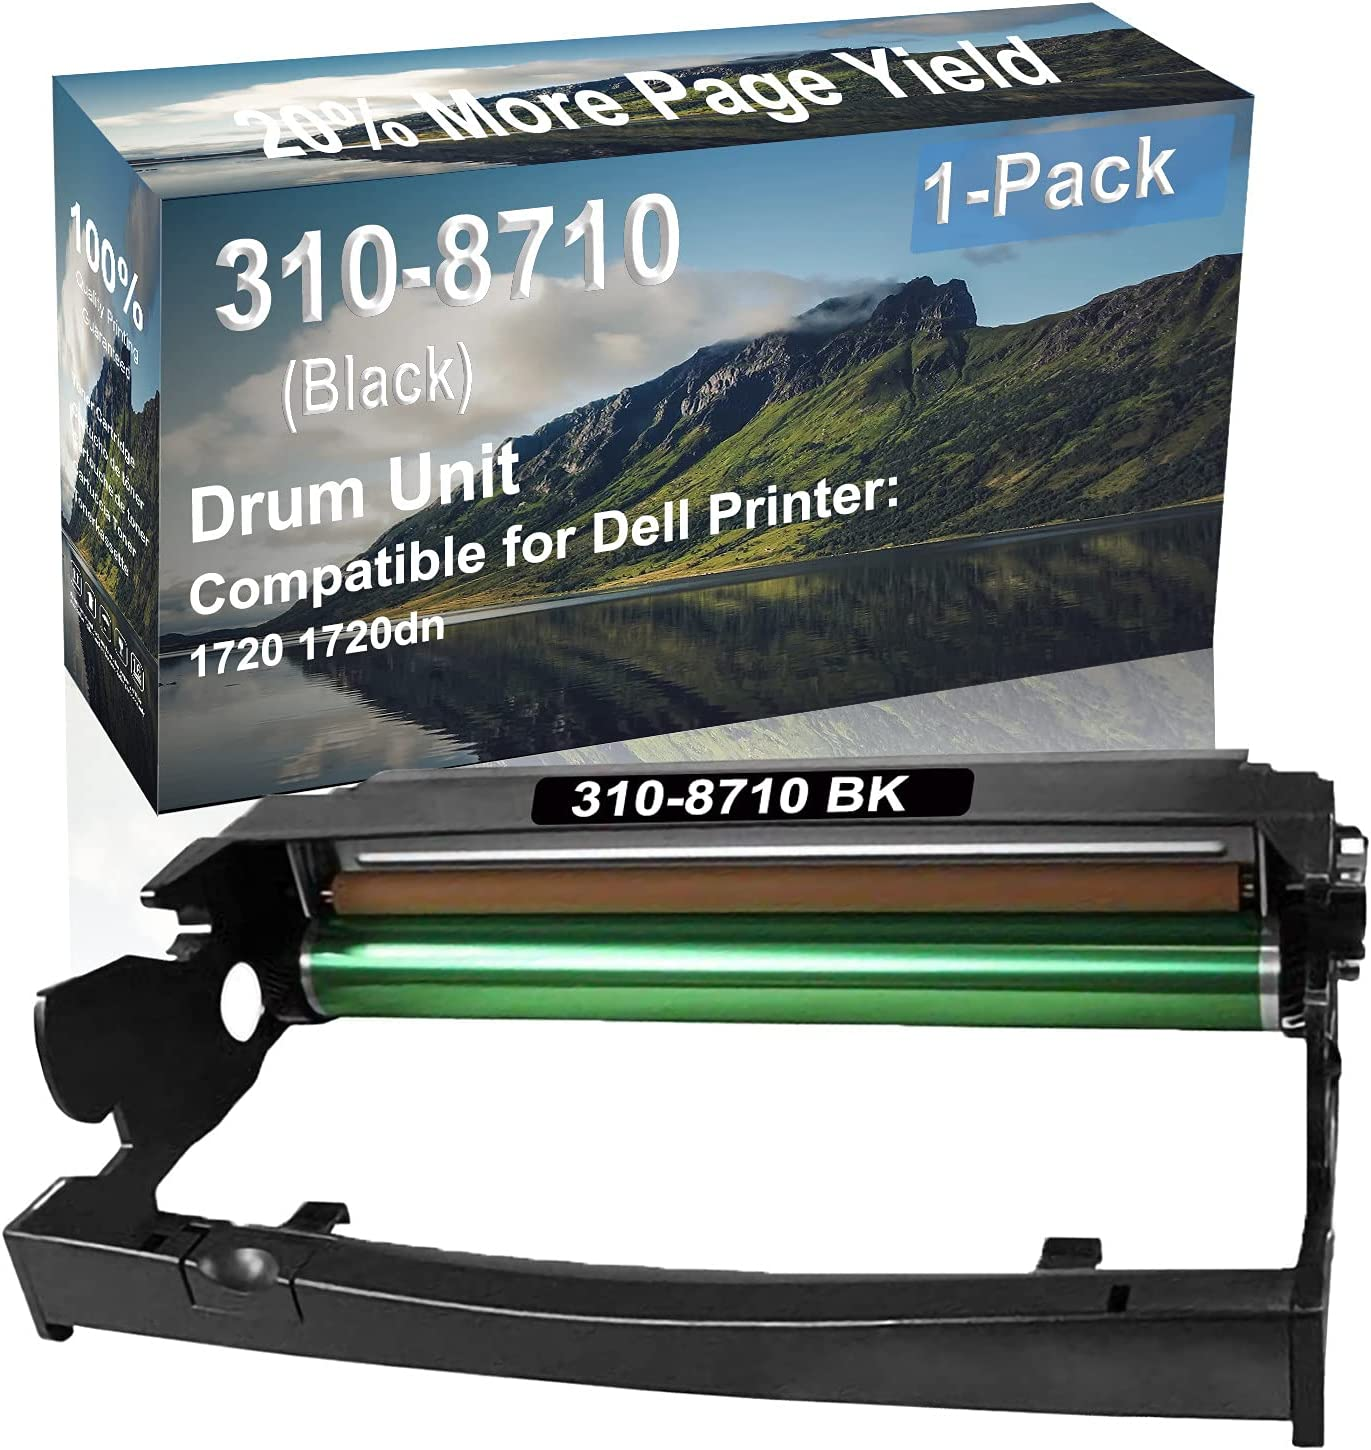 1-Pack Compatible Drum Unit (Black) Replacement for Dell 310-8710 Drum Kit use for Dell 1720 1720dn Printer